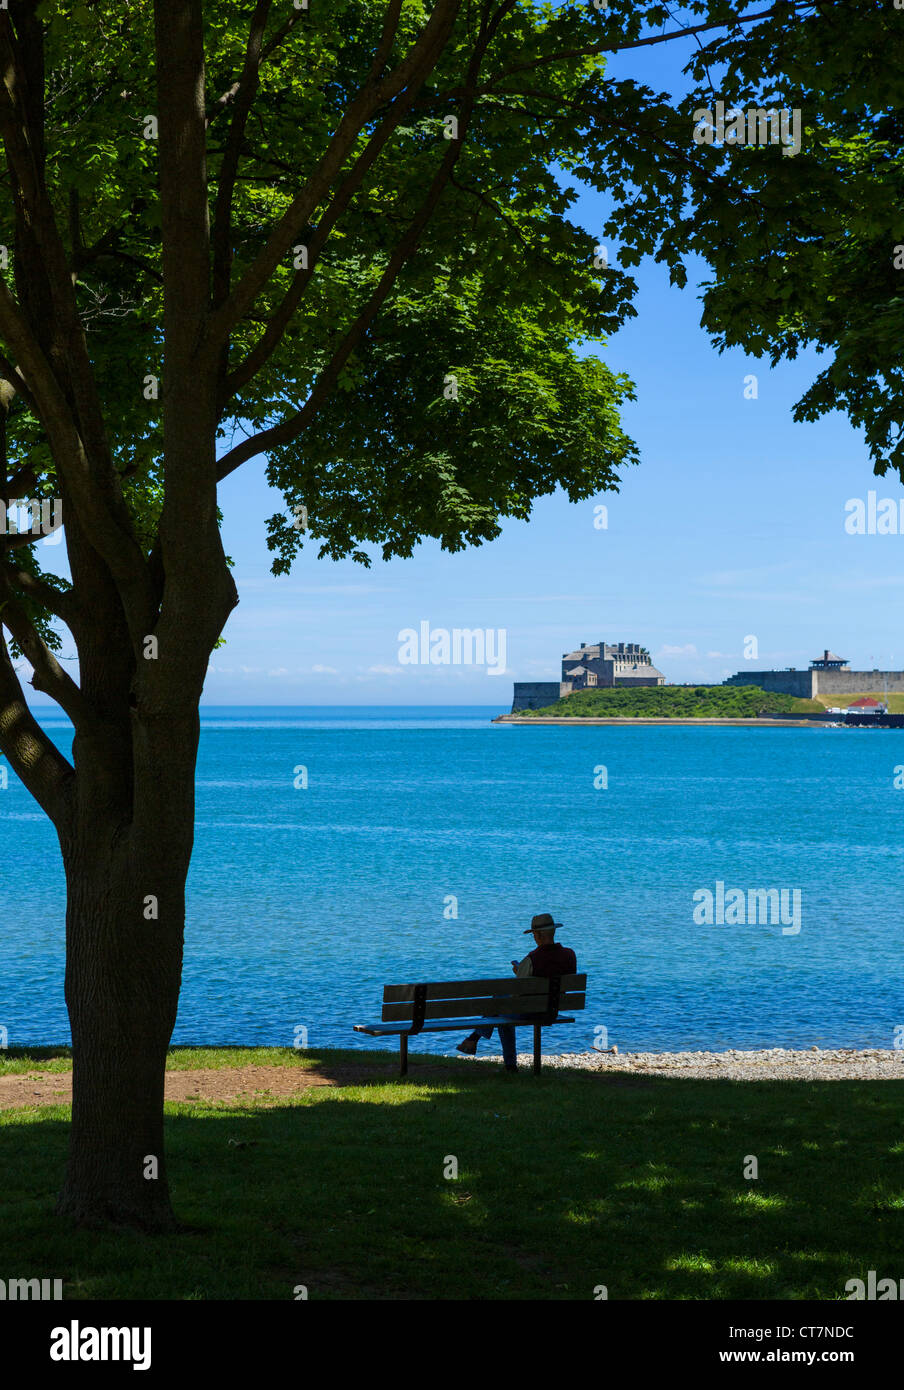 Man on bench in Queen's Royal Park on Lake Ontario with Old Fort Niagara (USA) in distance, Niagara-on-the-Lake, - Stock Image